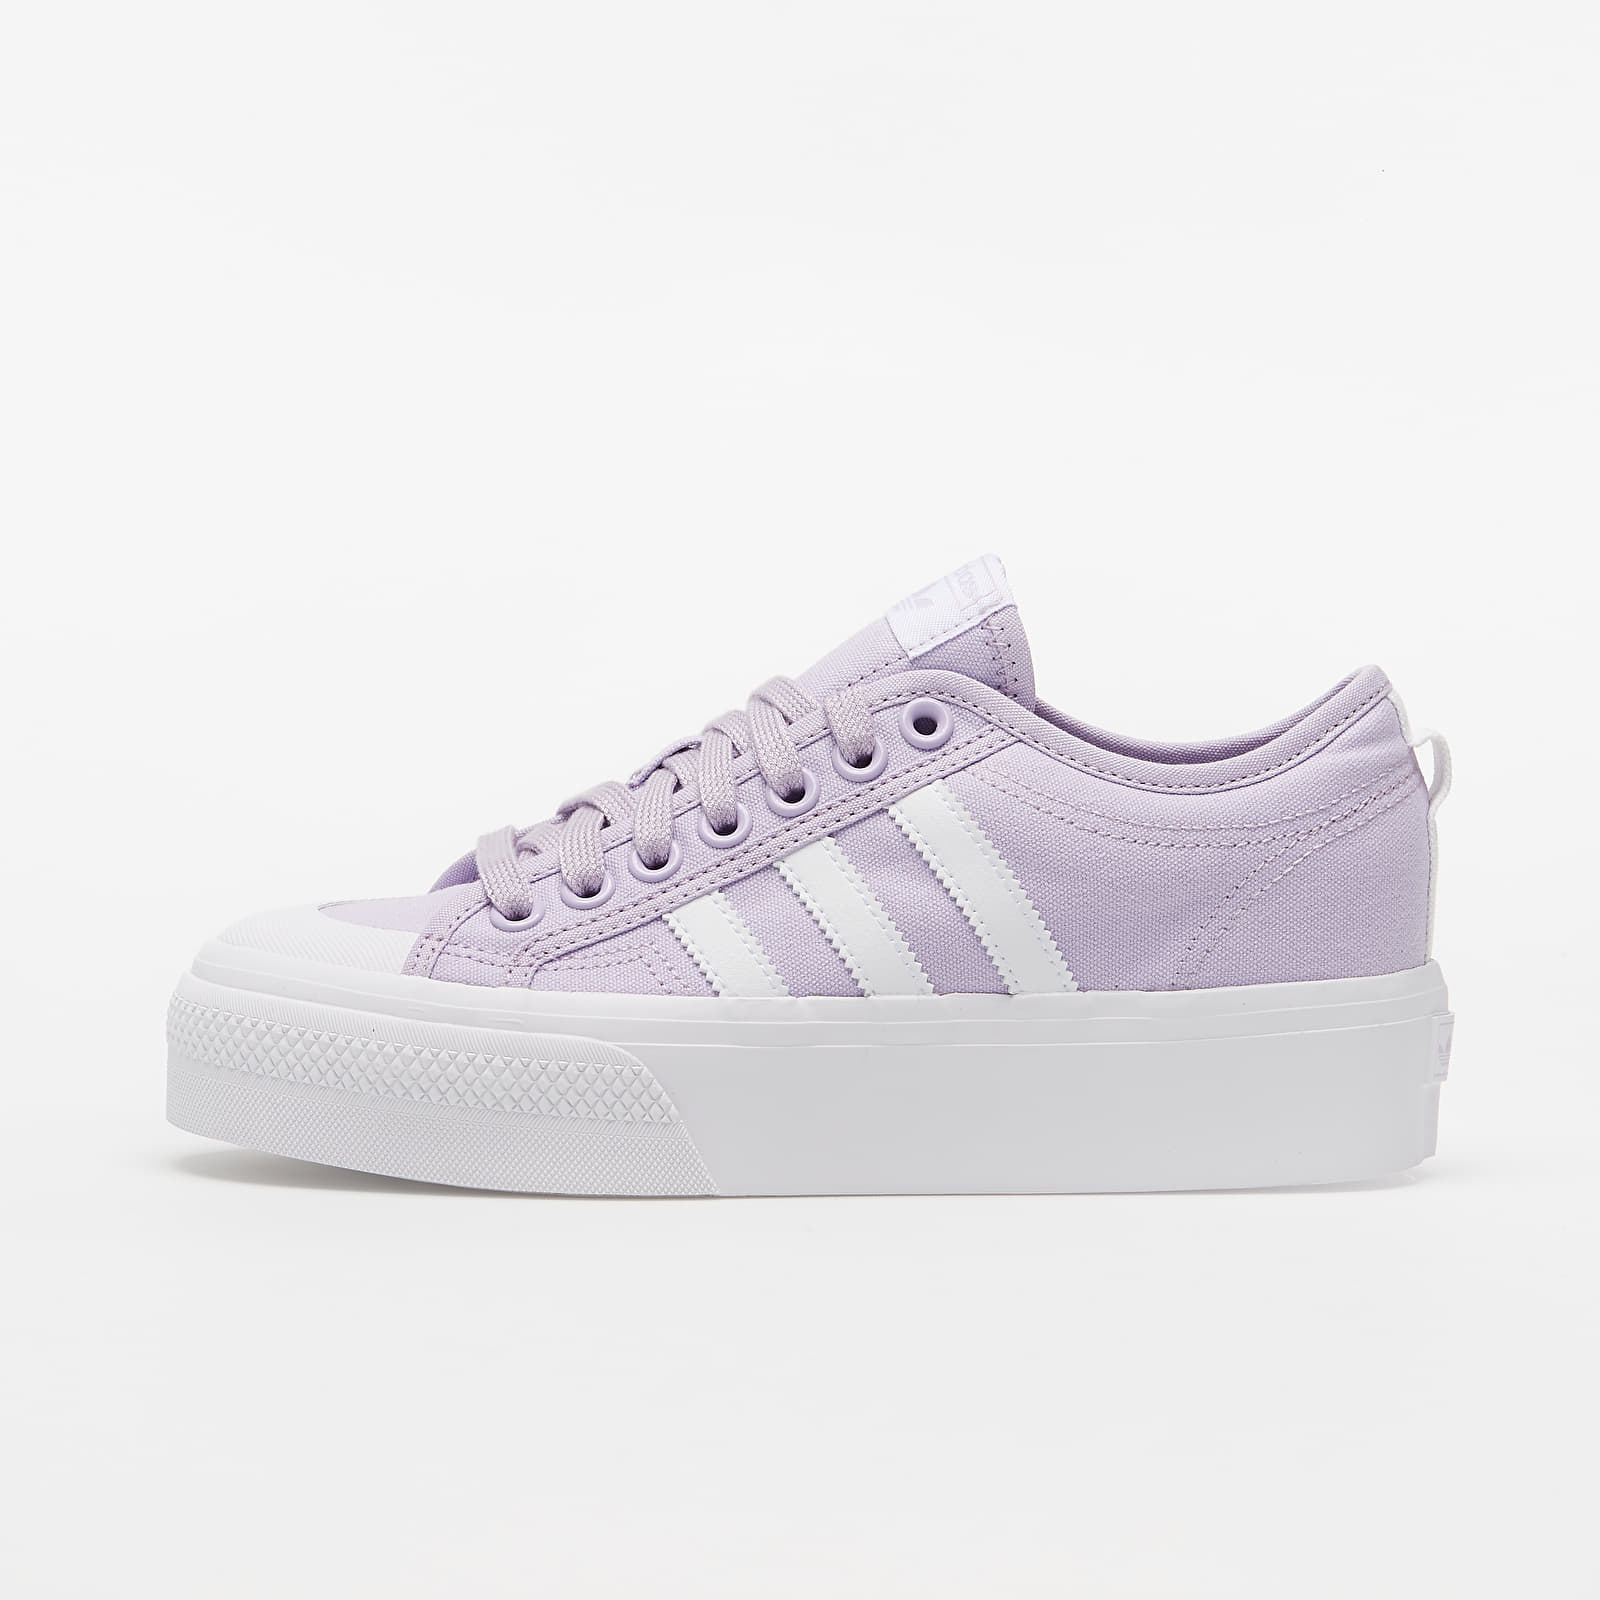 Women's shoes adidas Nizza Platform W Blizard Purple/ Ftw White/ Ftw White